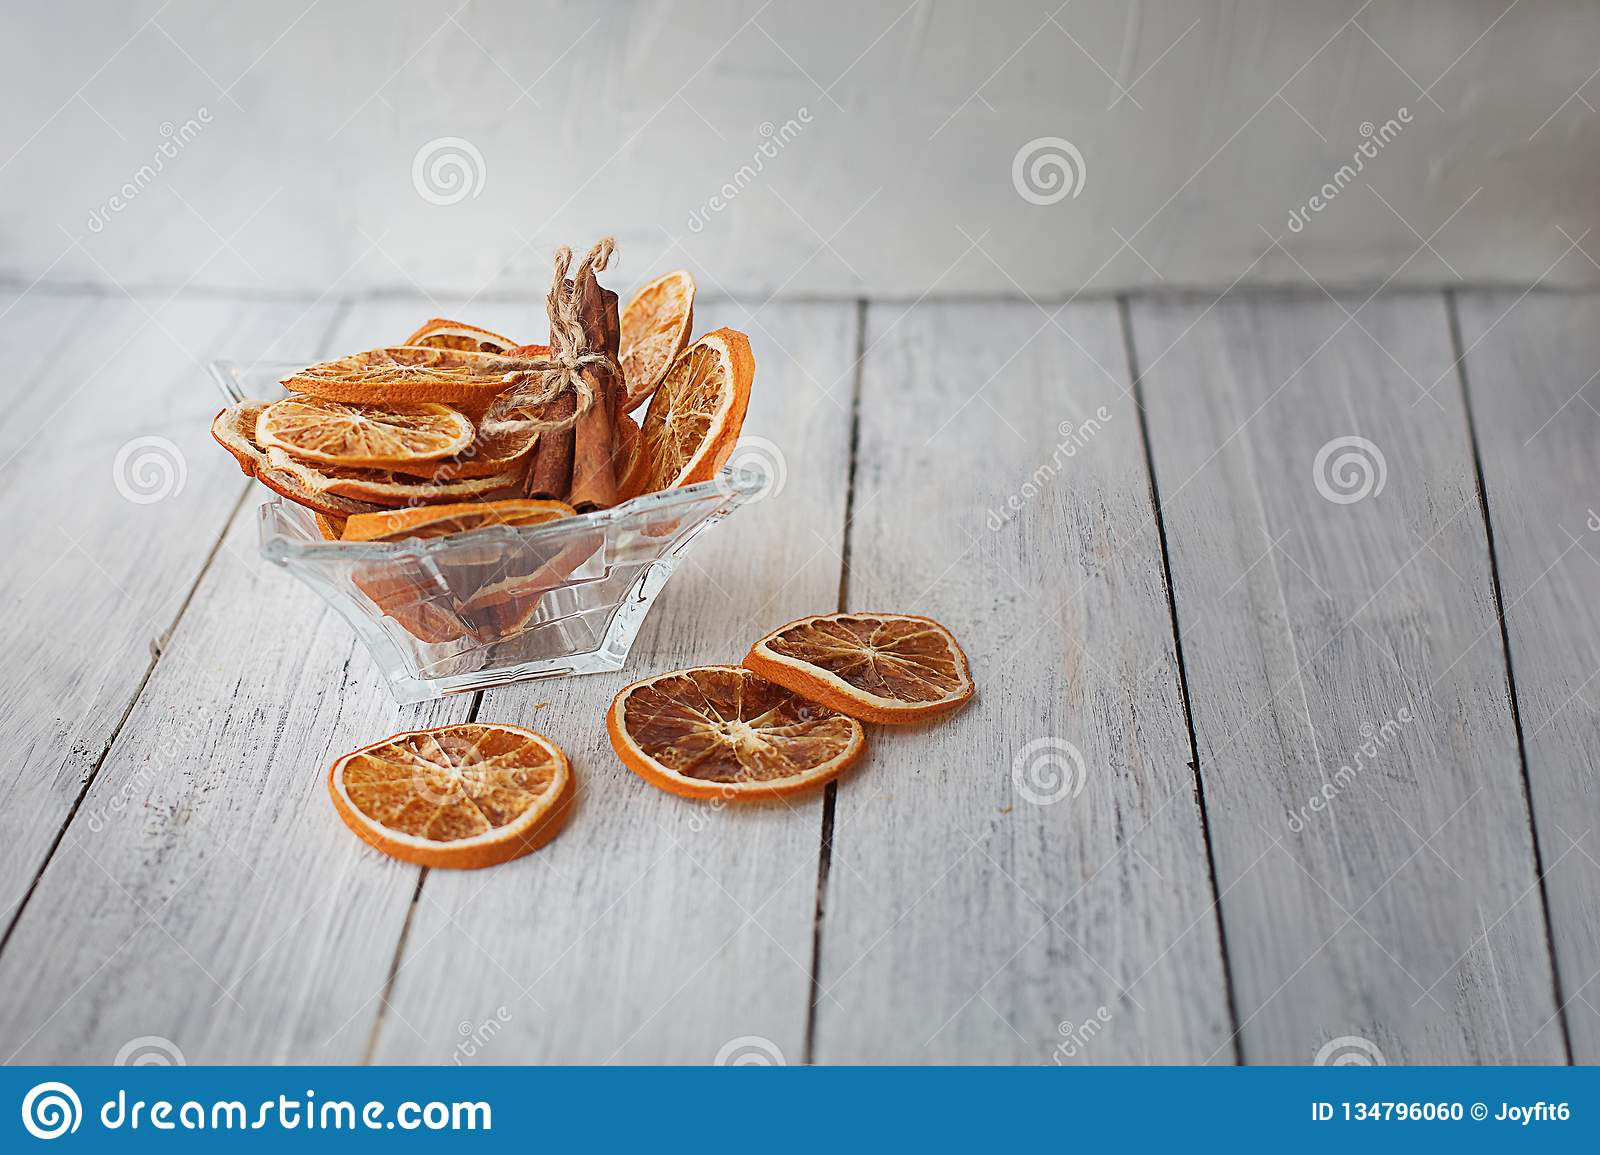 Dried orange slices with cinnamon in a vase